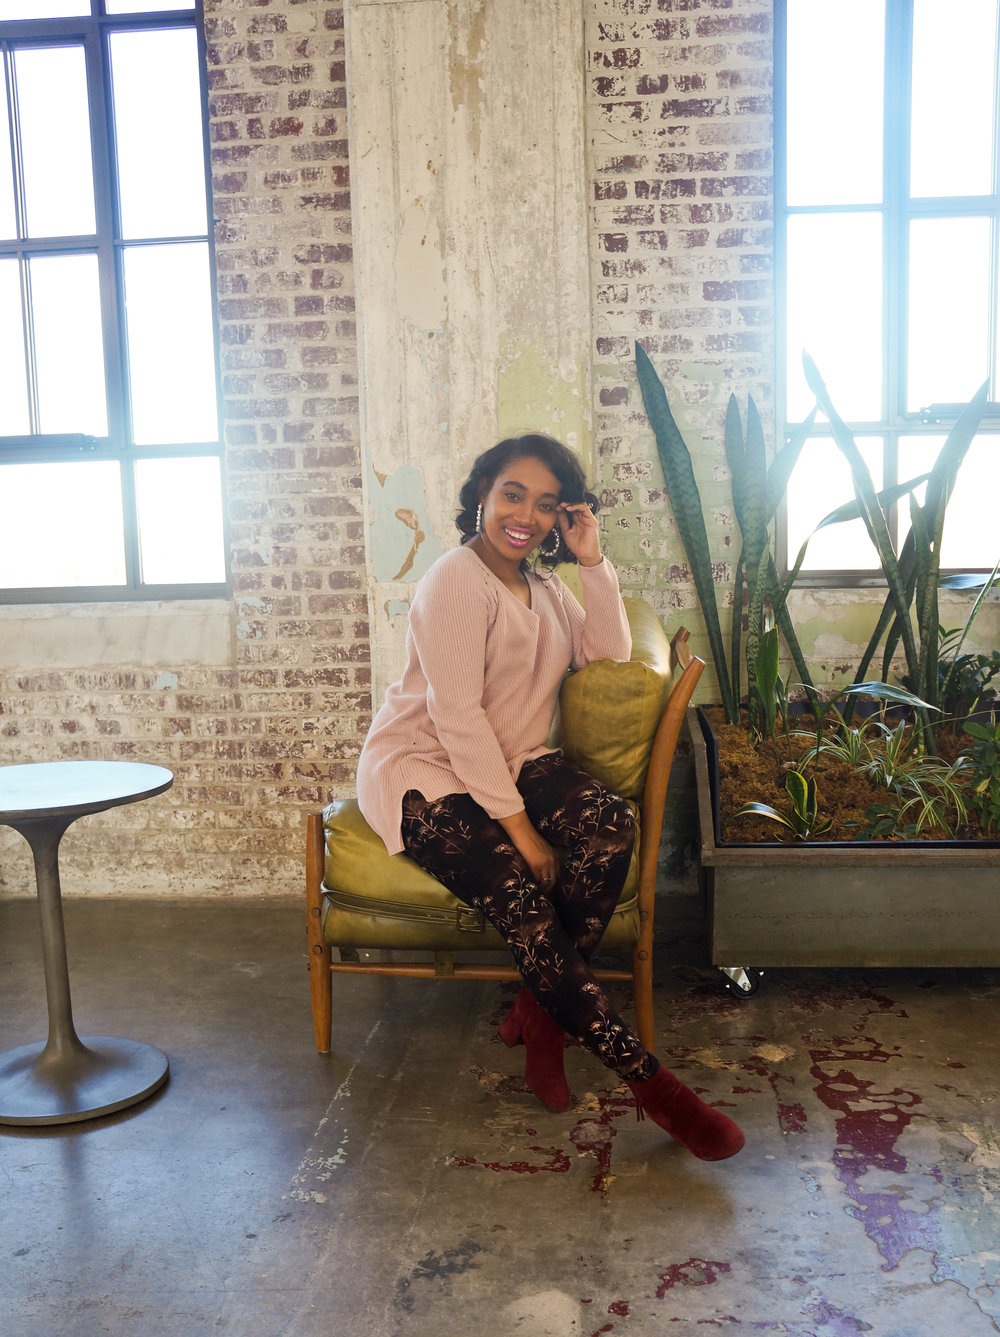 Andrea Fenise Memphis Fashion Blogger introduces financial series for creative entrepreneurs and moms